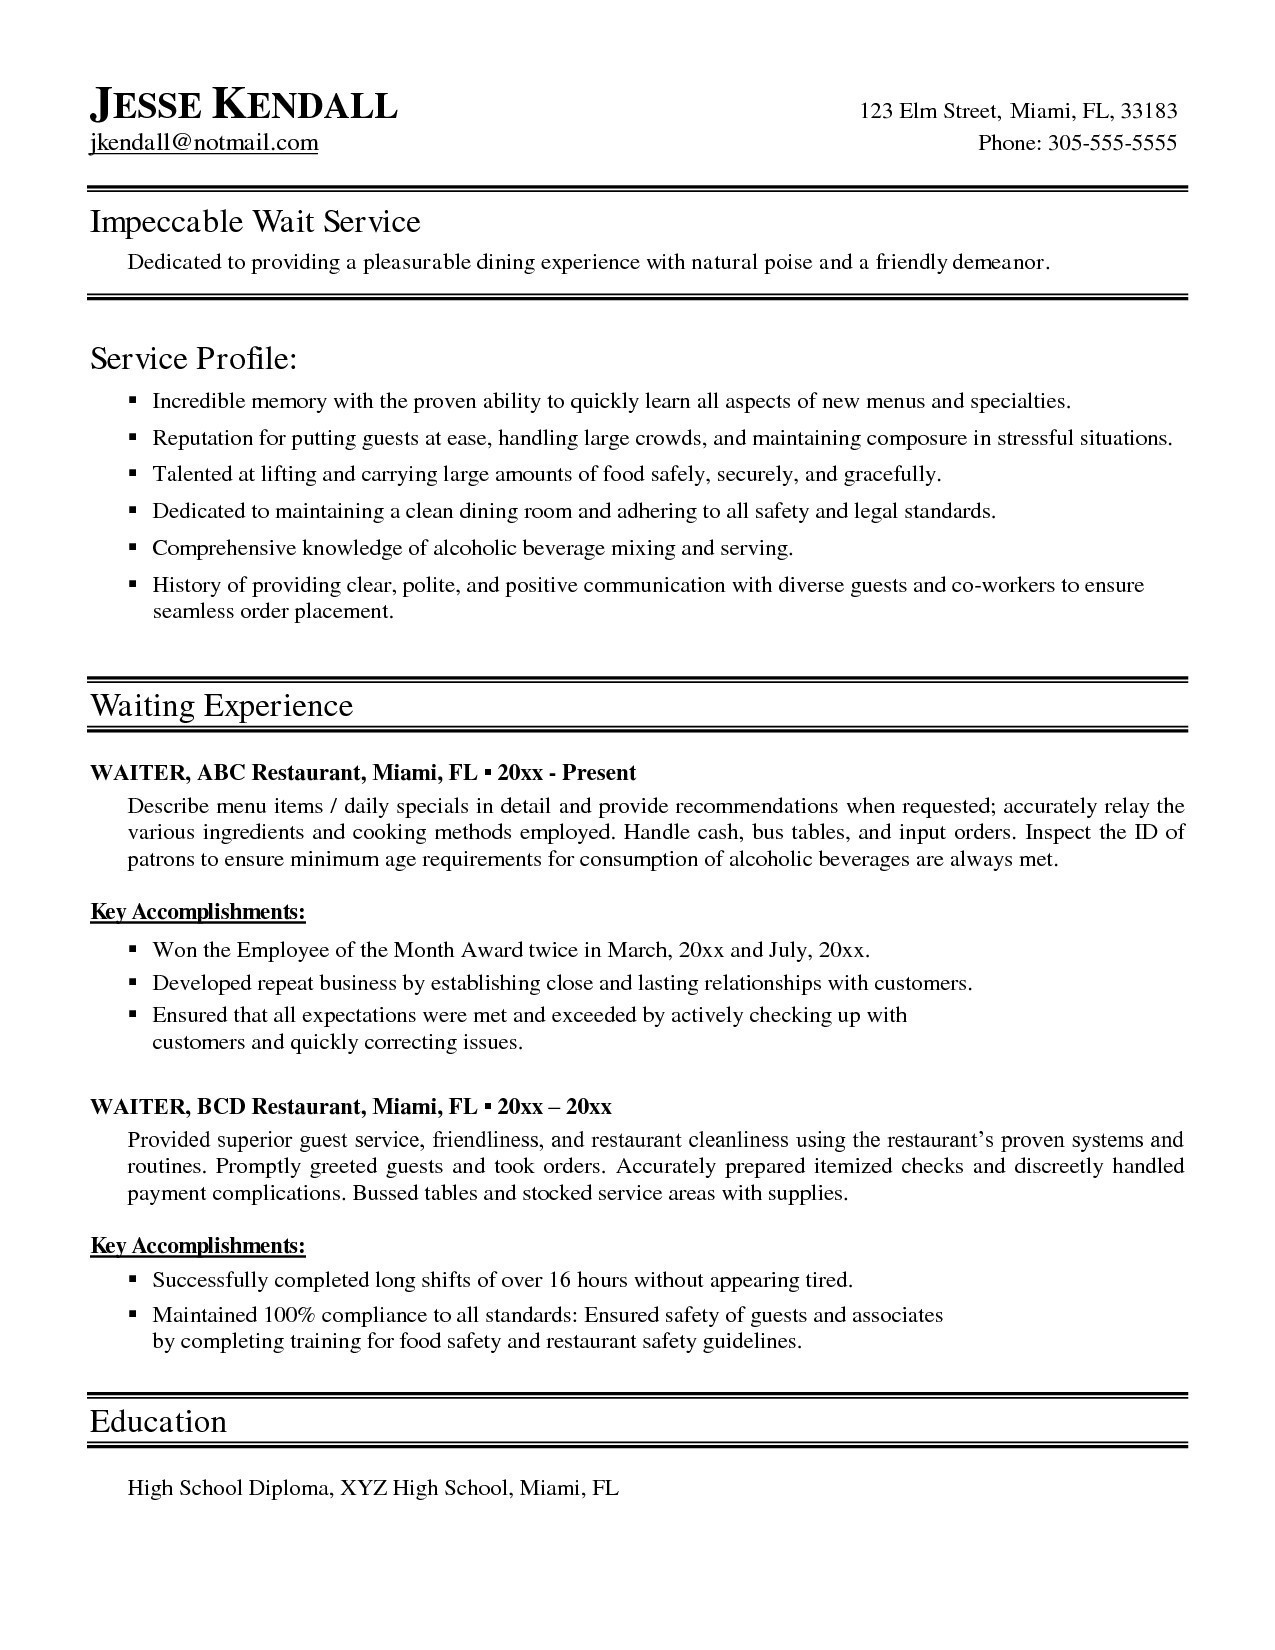 Nanny Resume Template - Simple Resume Examples Unique Nanny Resume Template Updated